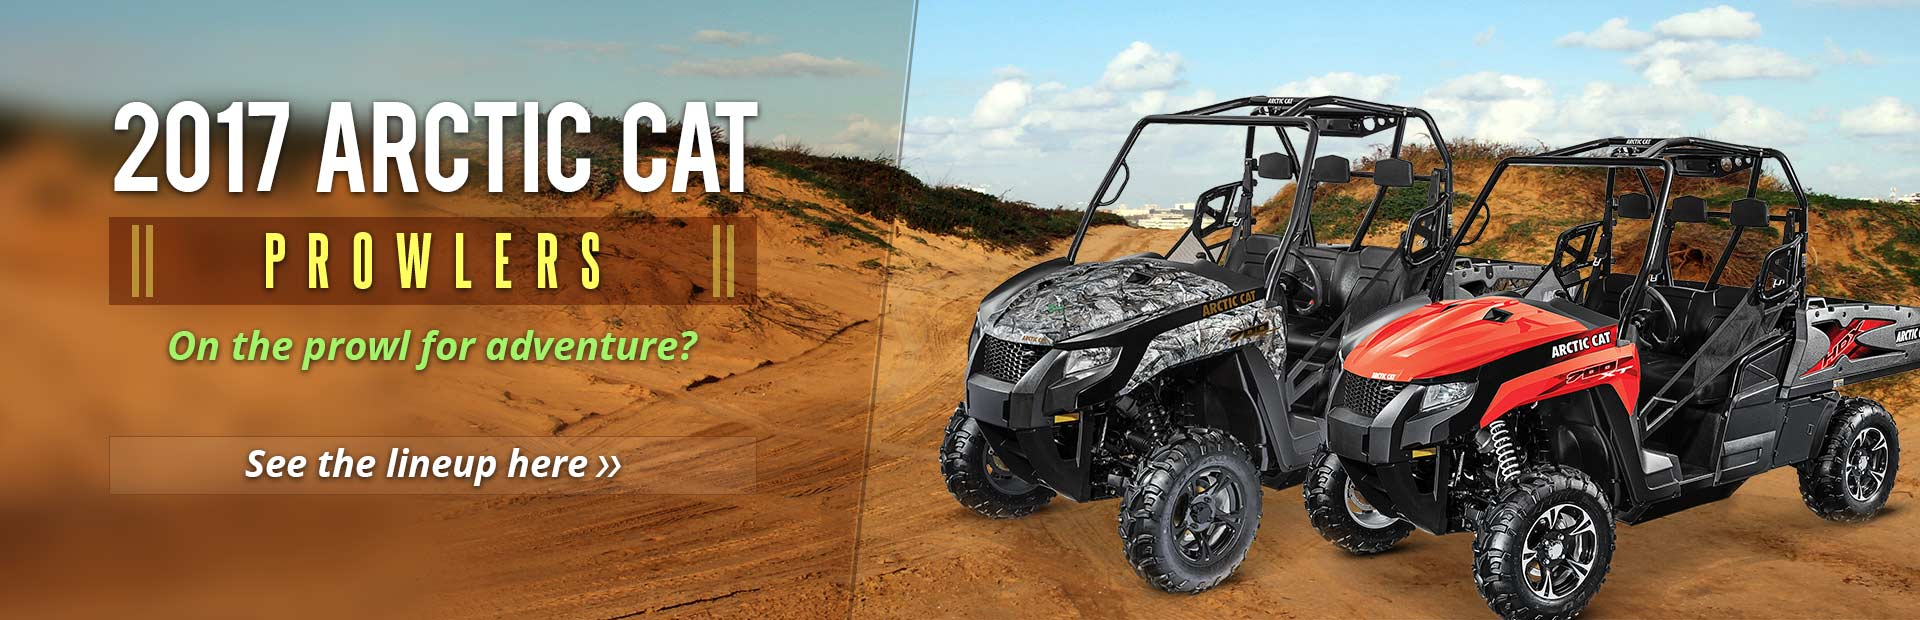 2017 Arctic Cat Prowlers: Click here to see the lineup!